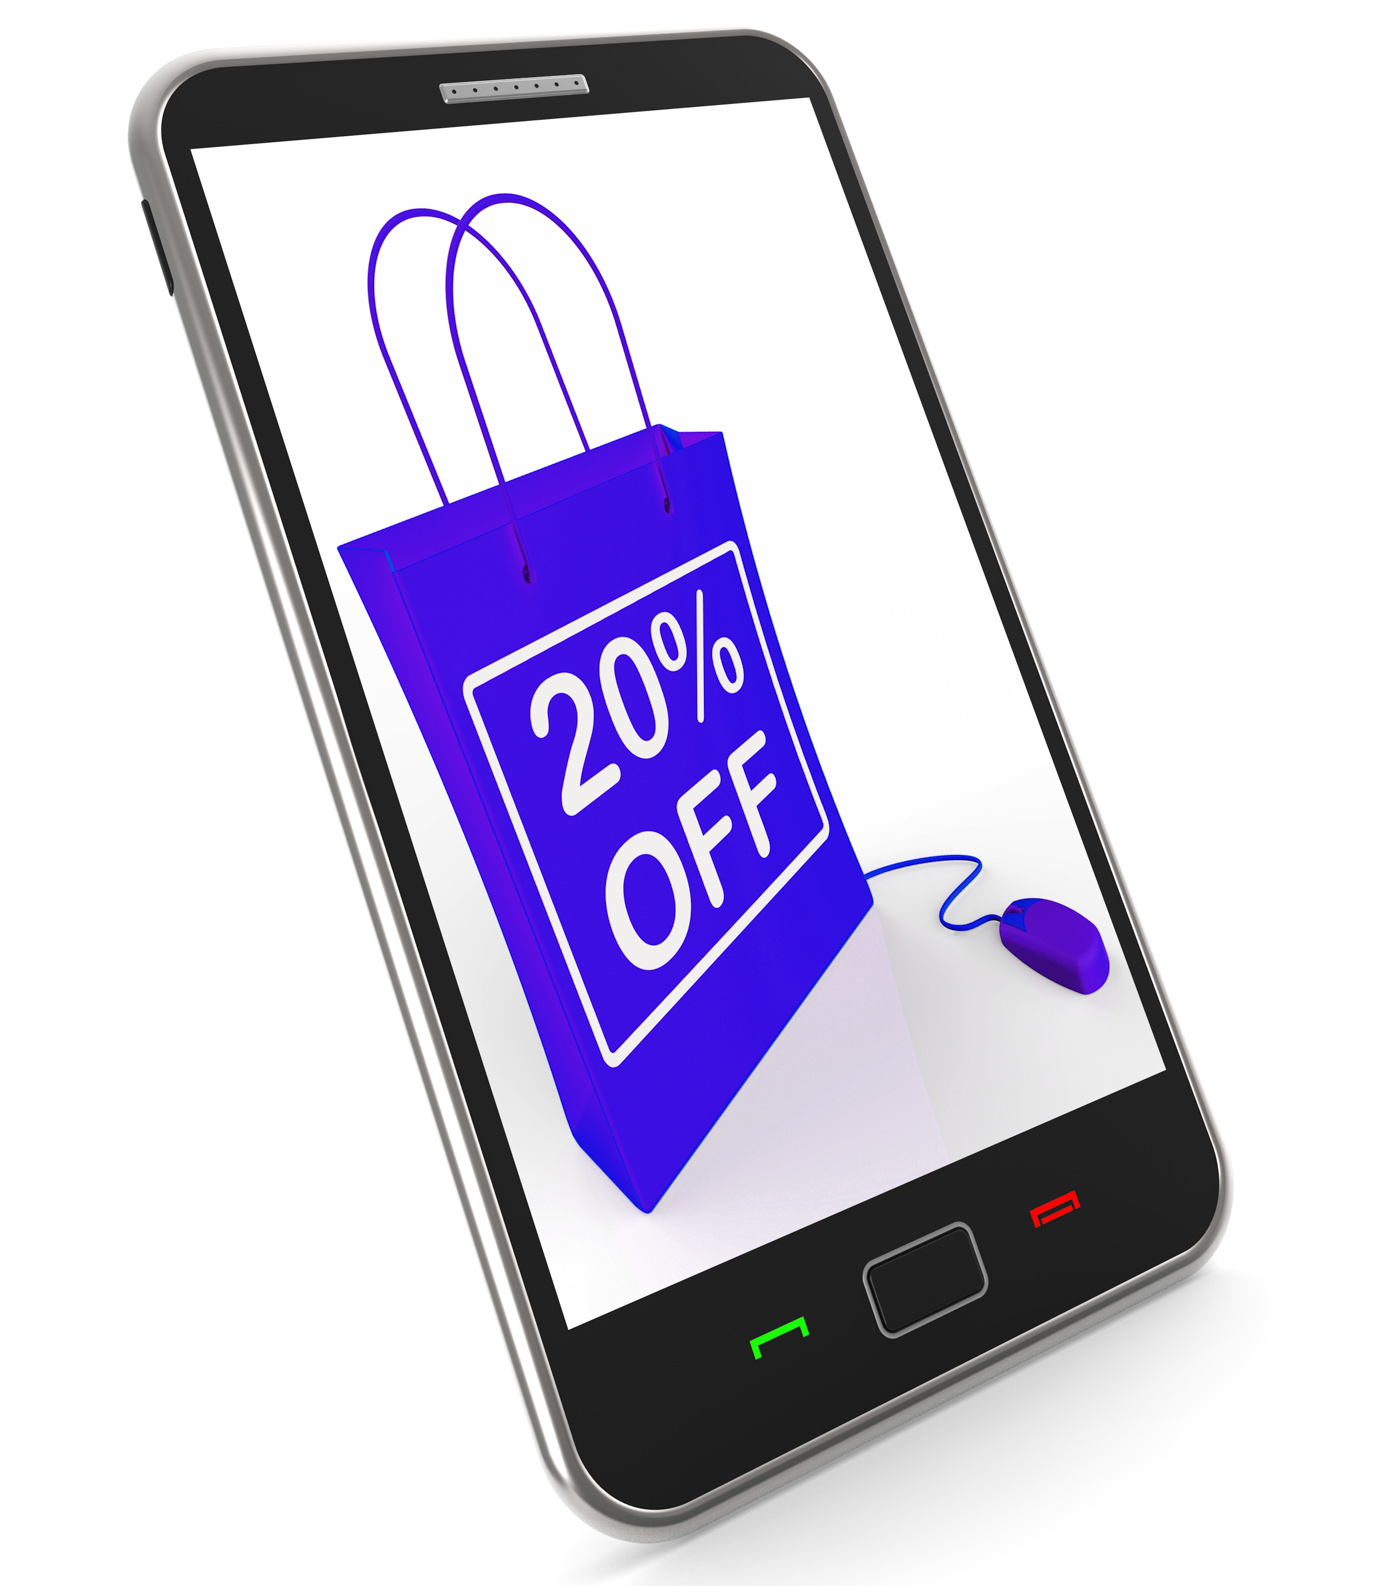 Twenty percent off phone shows online sales and discounts photo